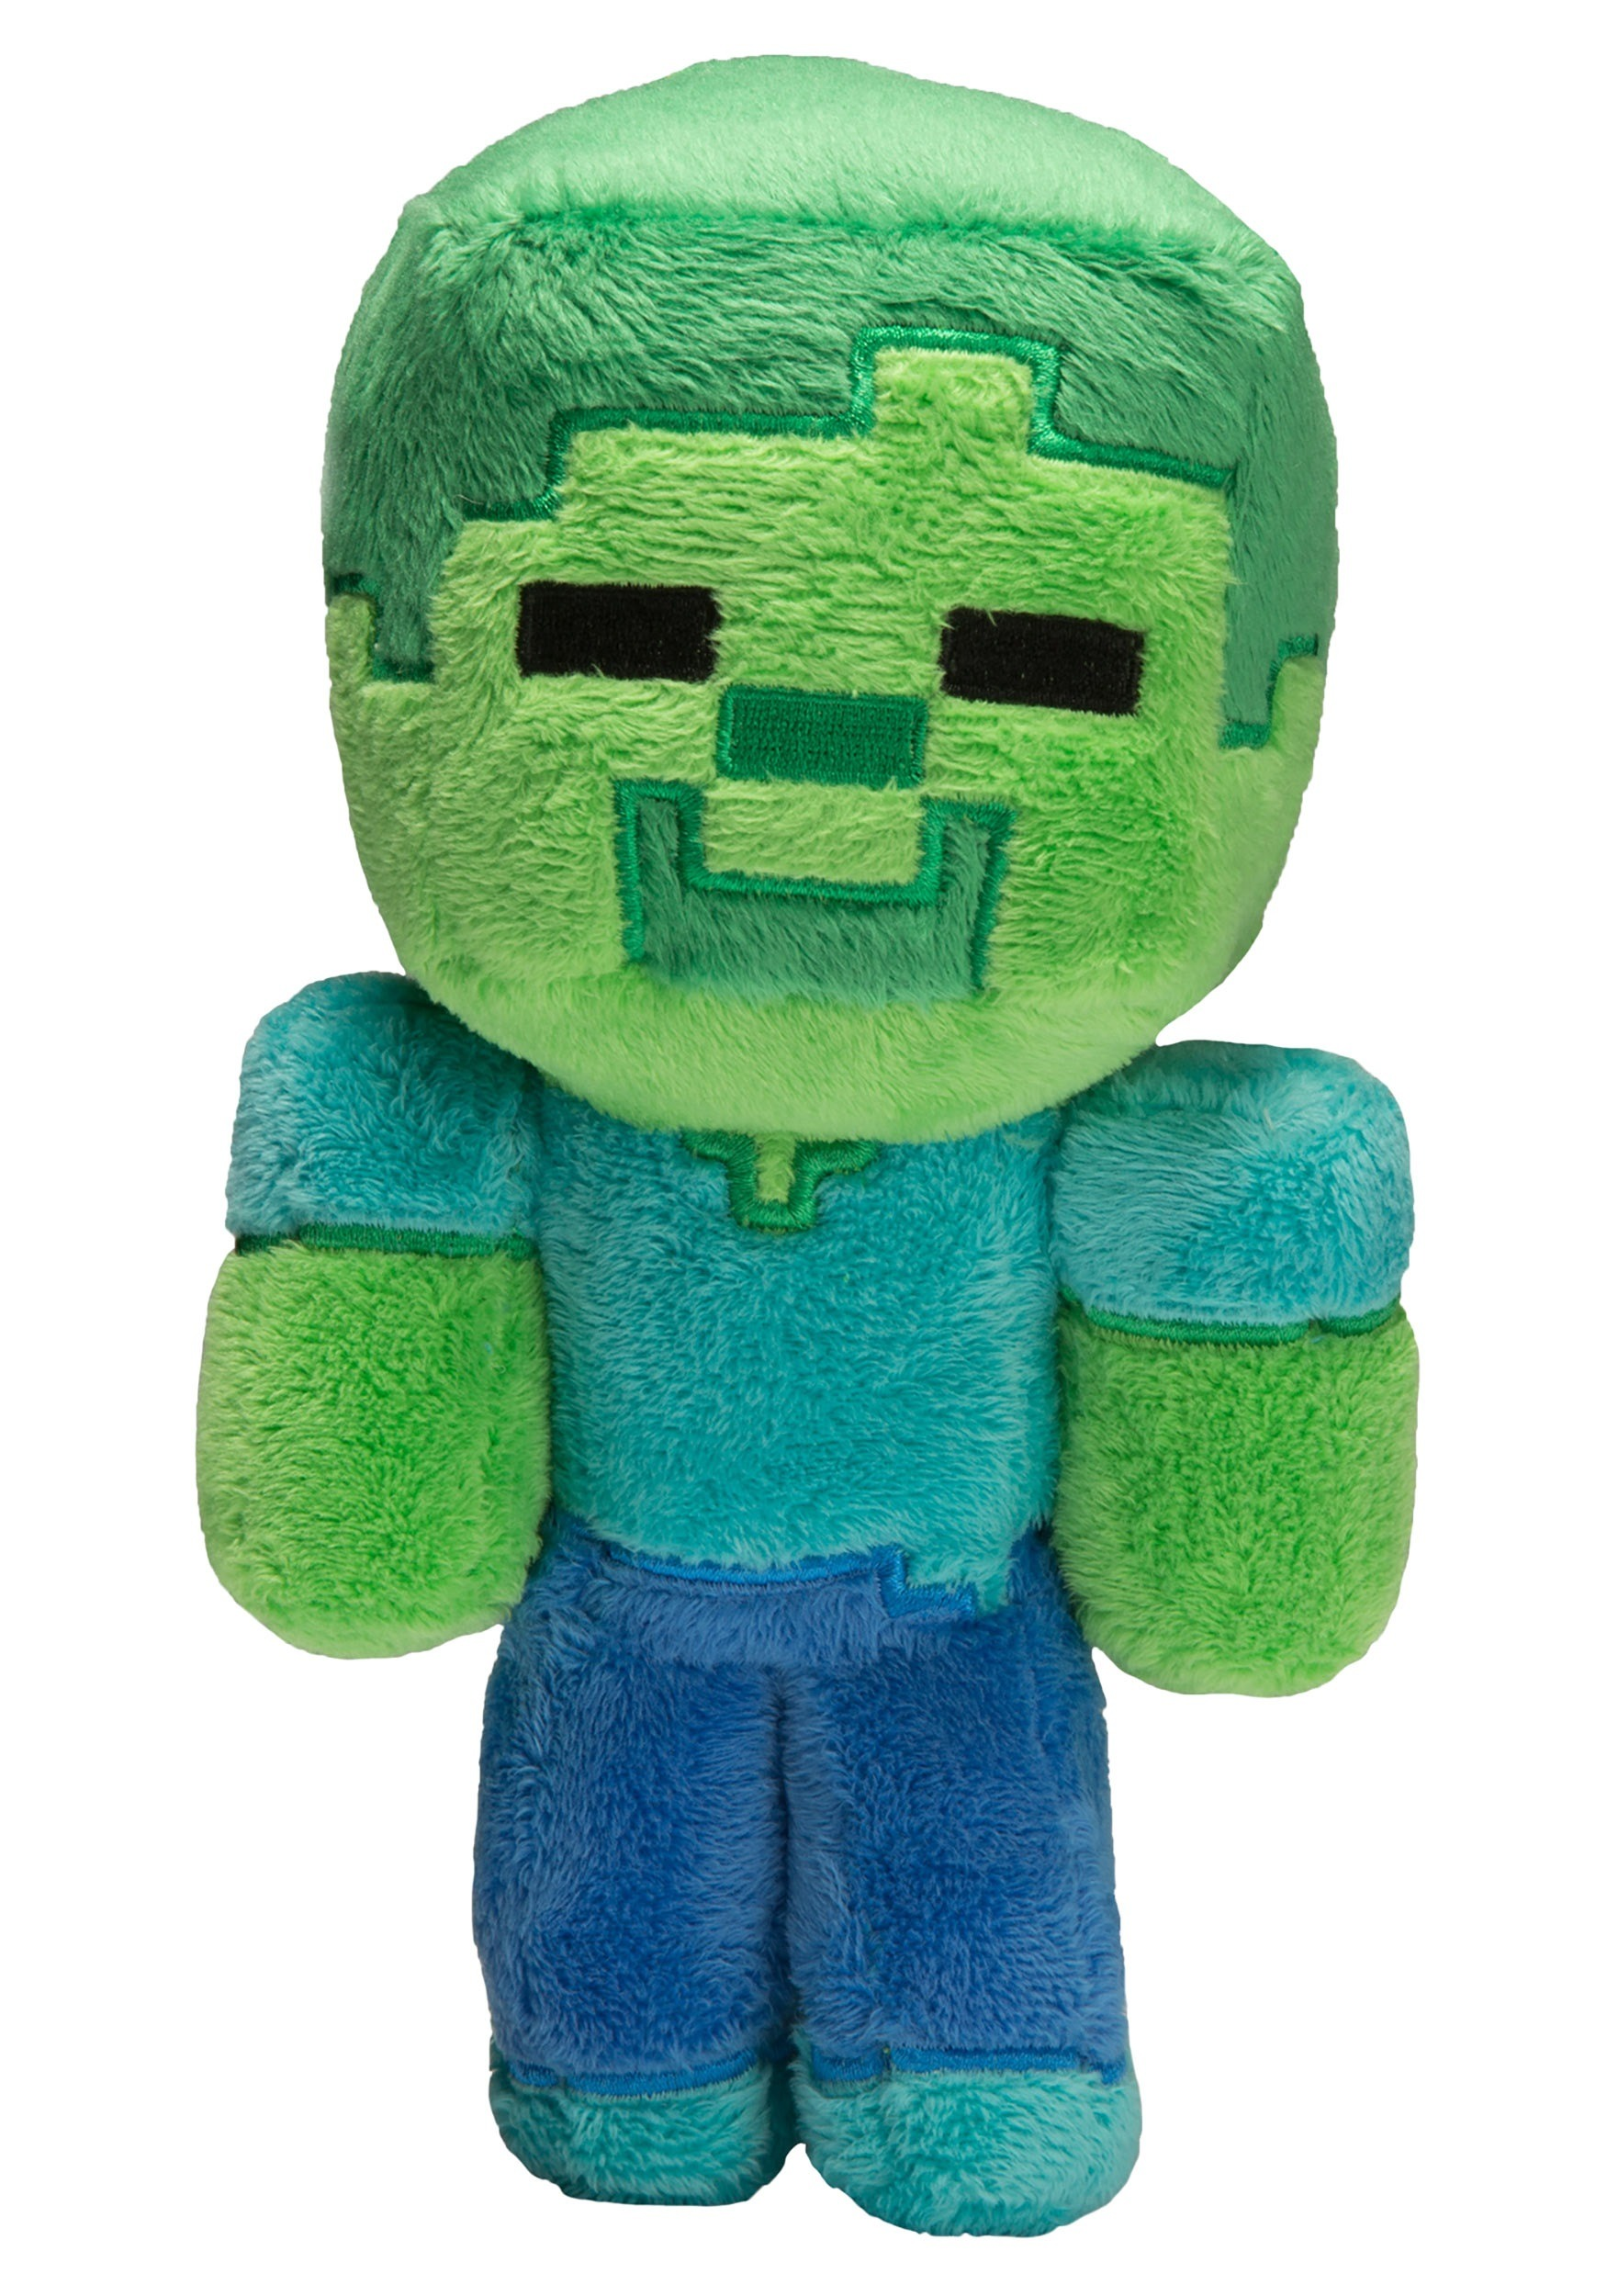 Minecraft Baby Zombie Plush on